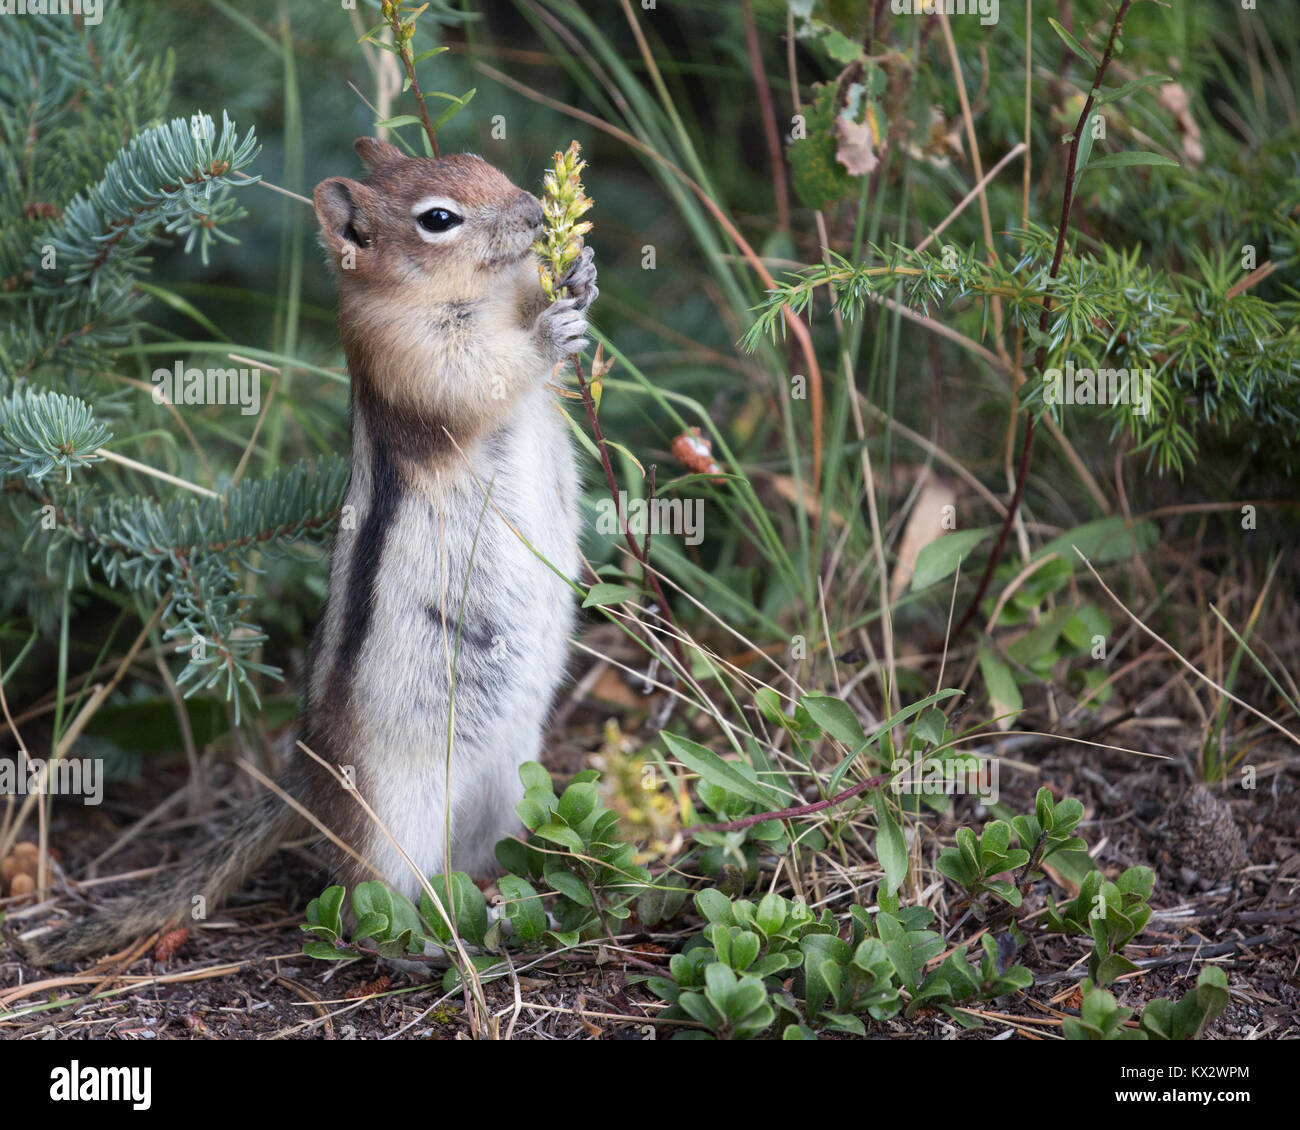 Golden-mantled ground squirrel (Callospermophilus lateralis) in Banff National Park - Stock Image